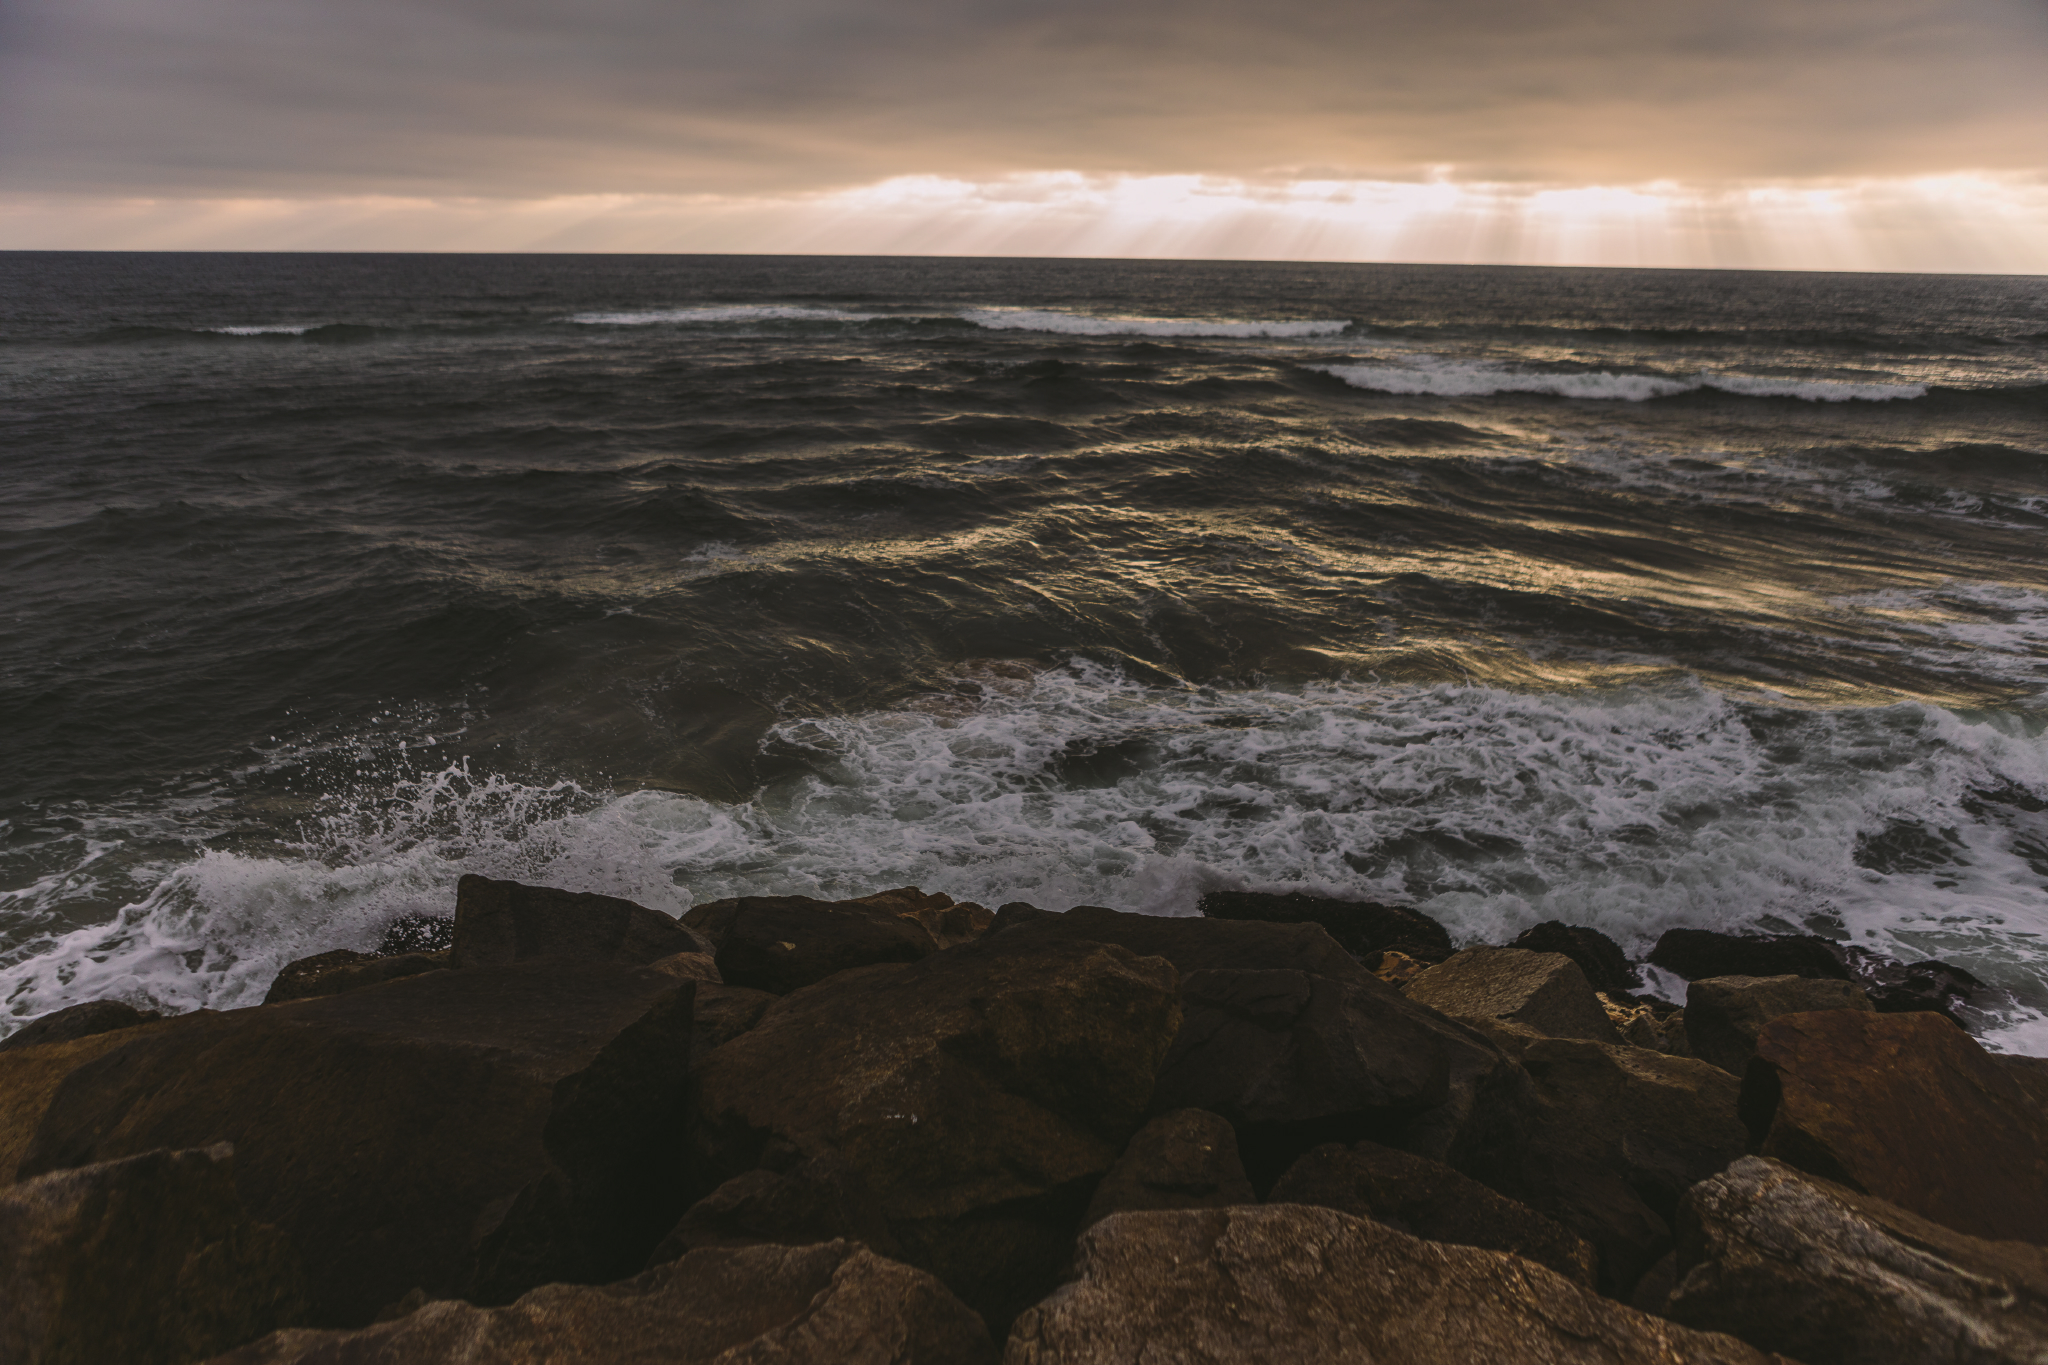 san diego wedding   photographer | view of rocky shore with sunrays seen from afar